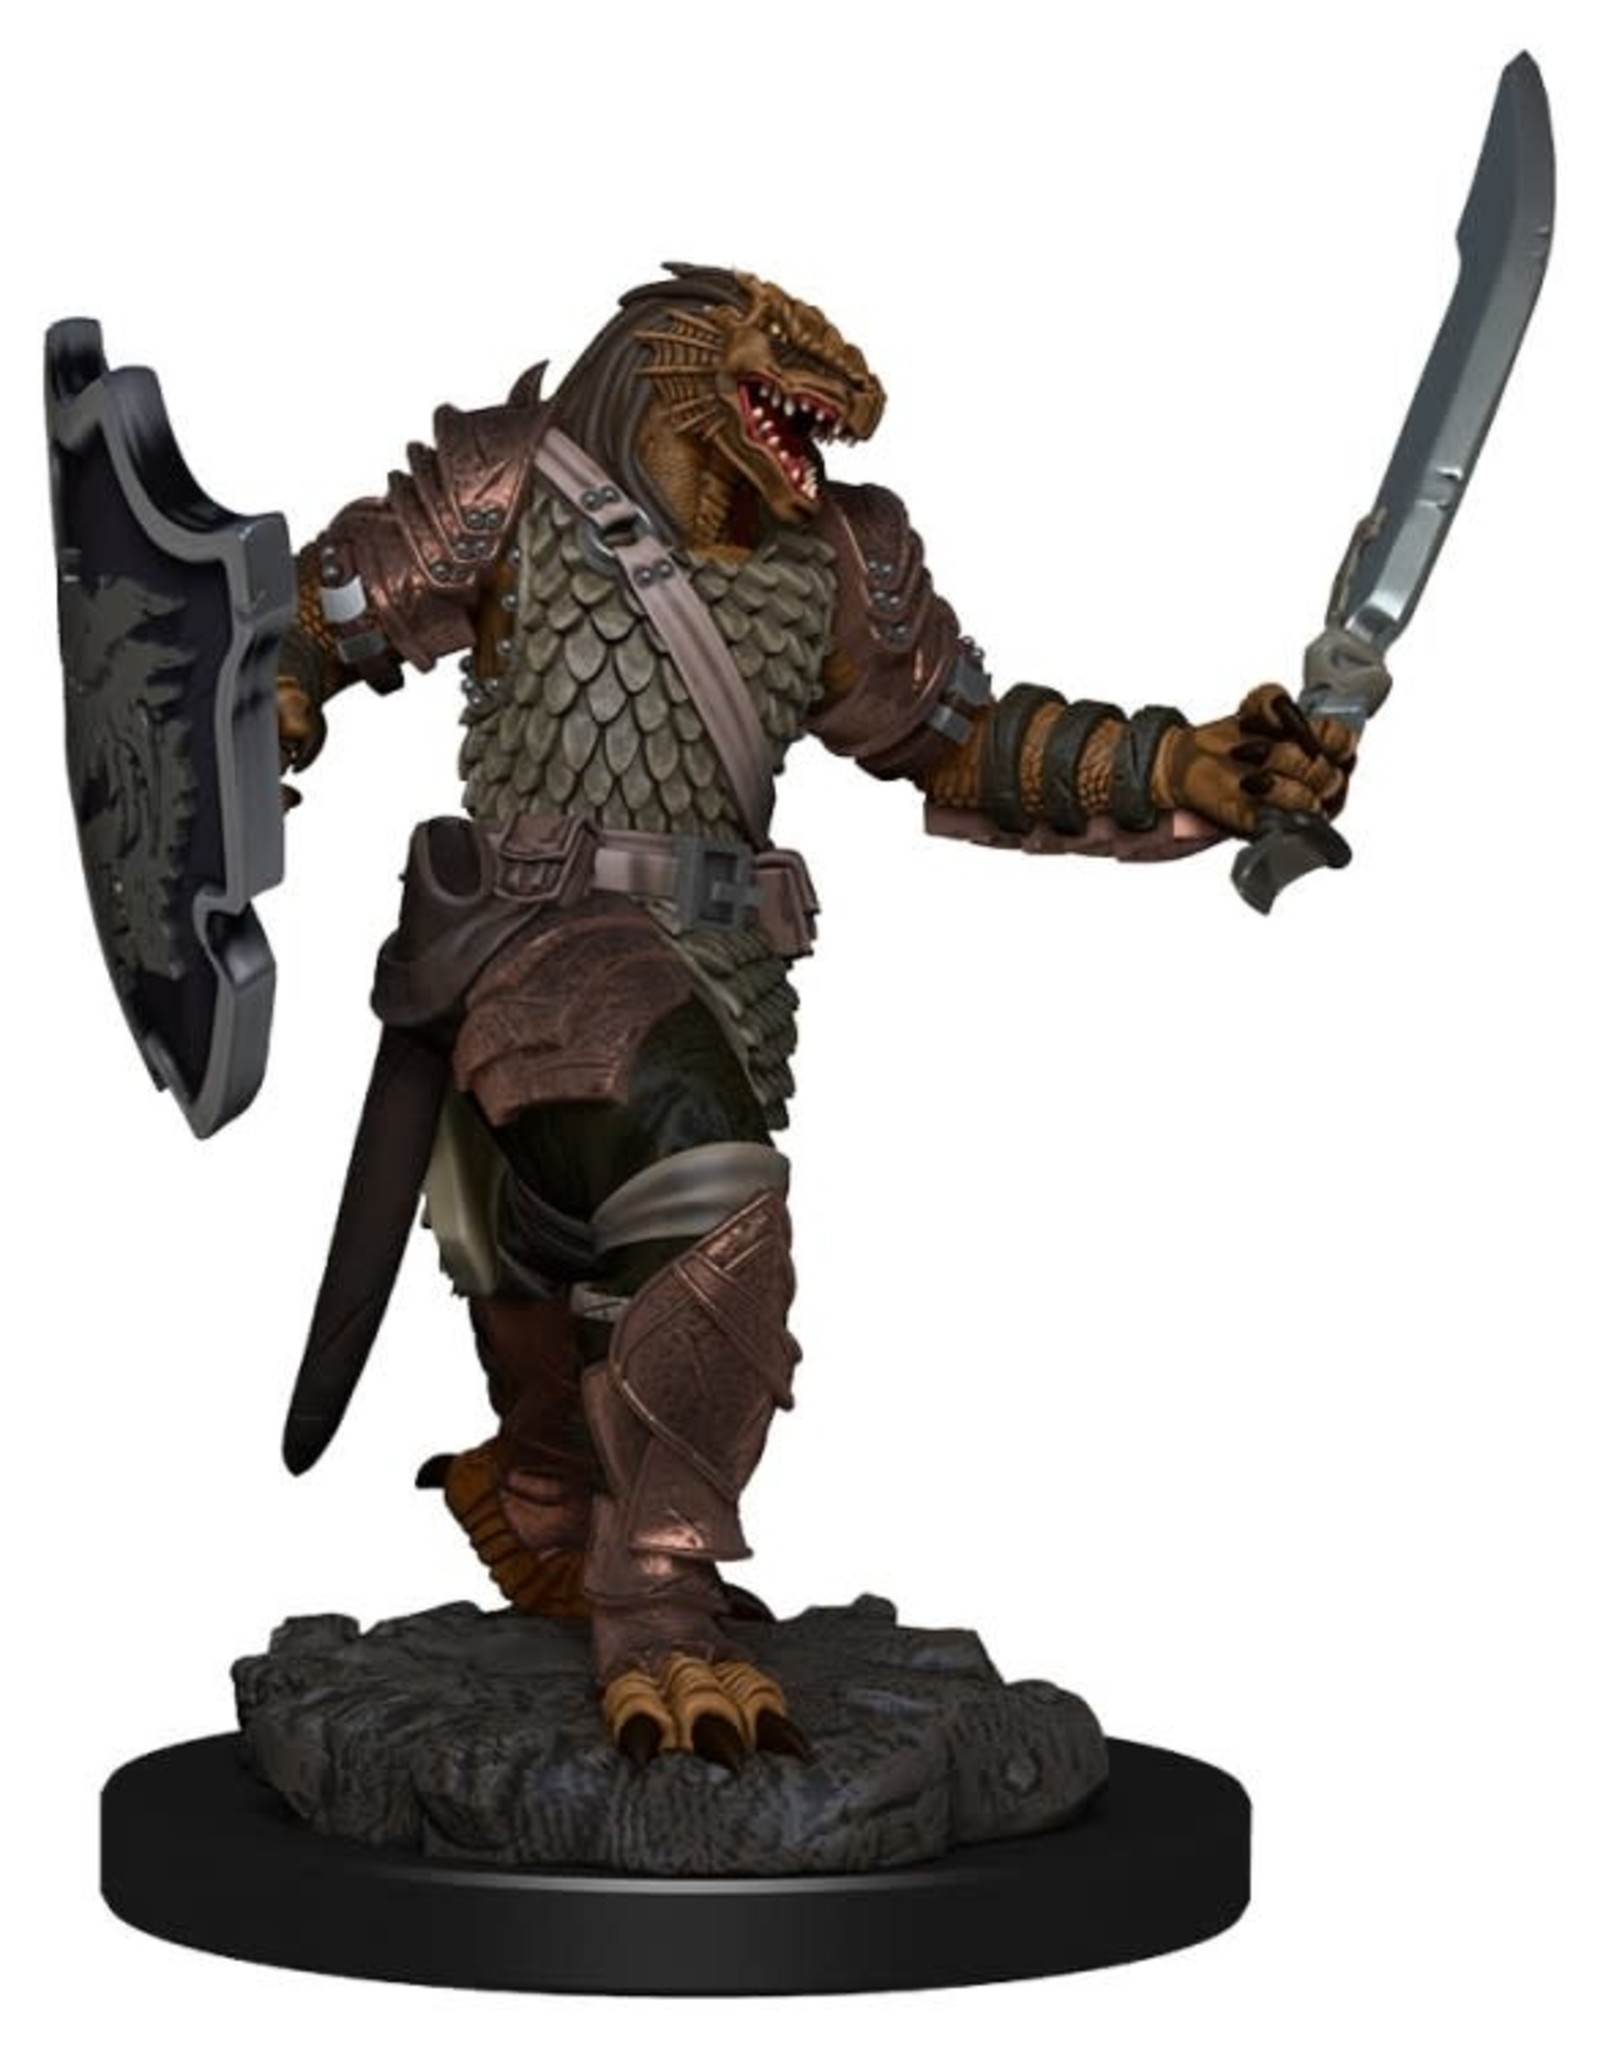 Wizkids Dungeons & Dragons Icons of the Realms Premium Figures: Dragonborn Female Paladin